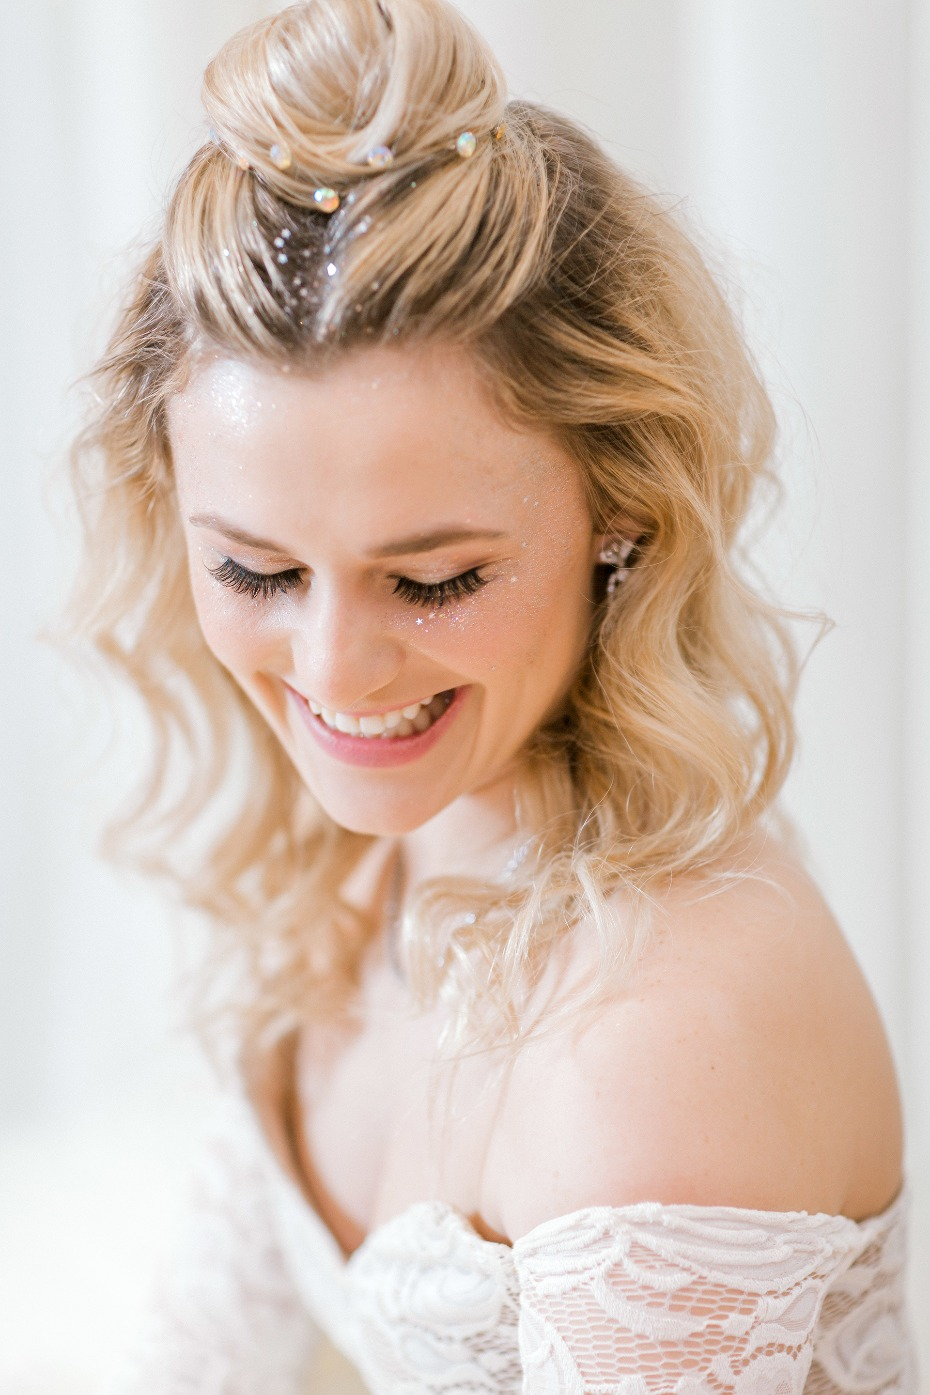 Festival inspired bridal makeup and hair